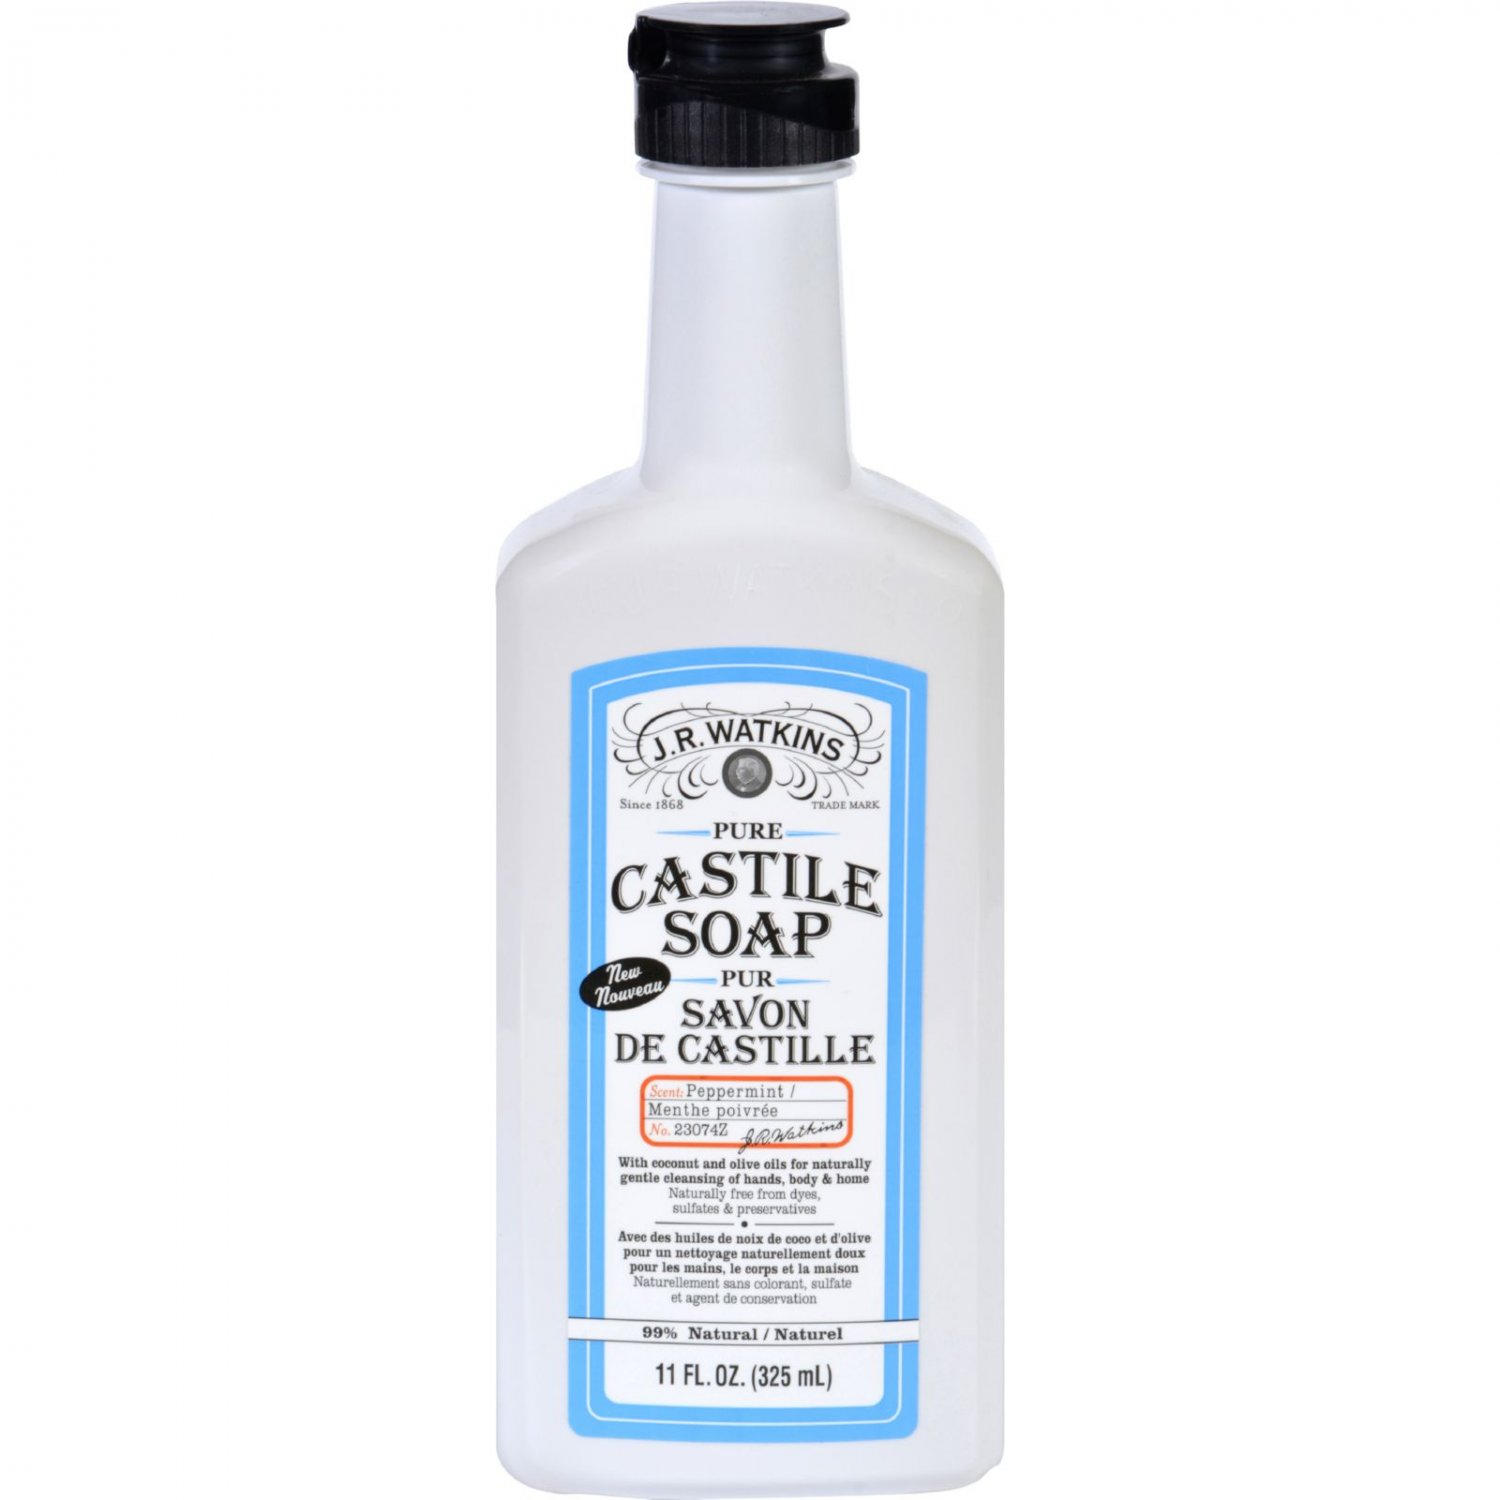 J.R. Watkins Hand Soap - Castile - Liquid - Peppermint - 11 oz